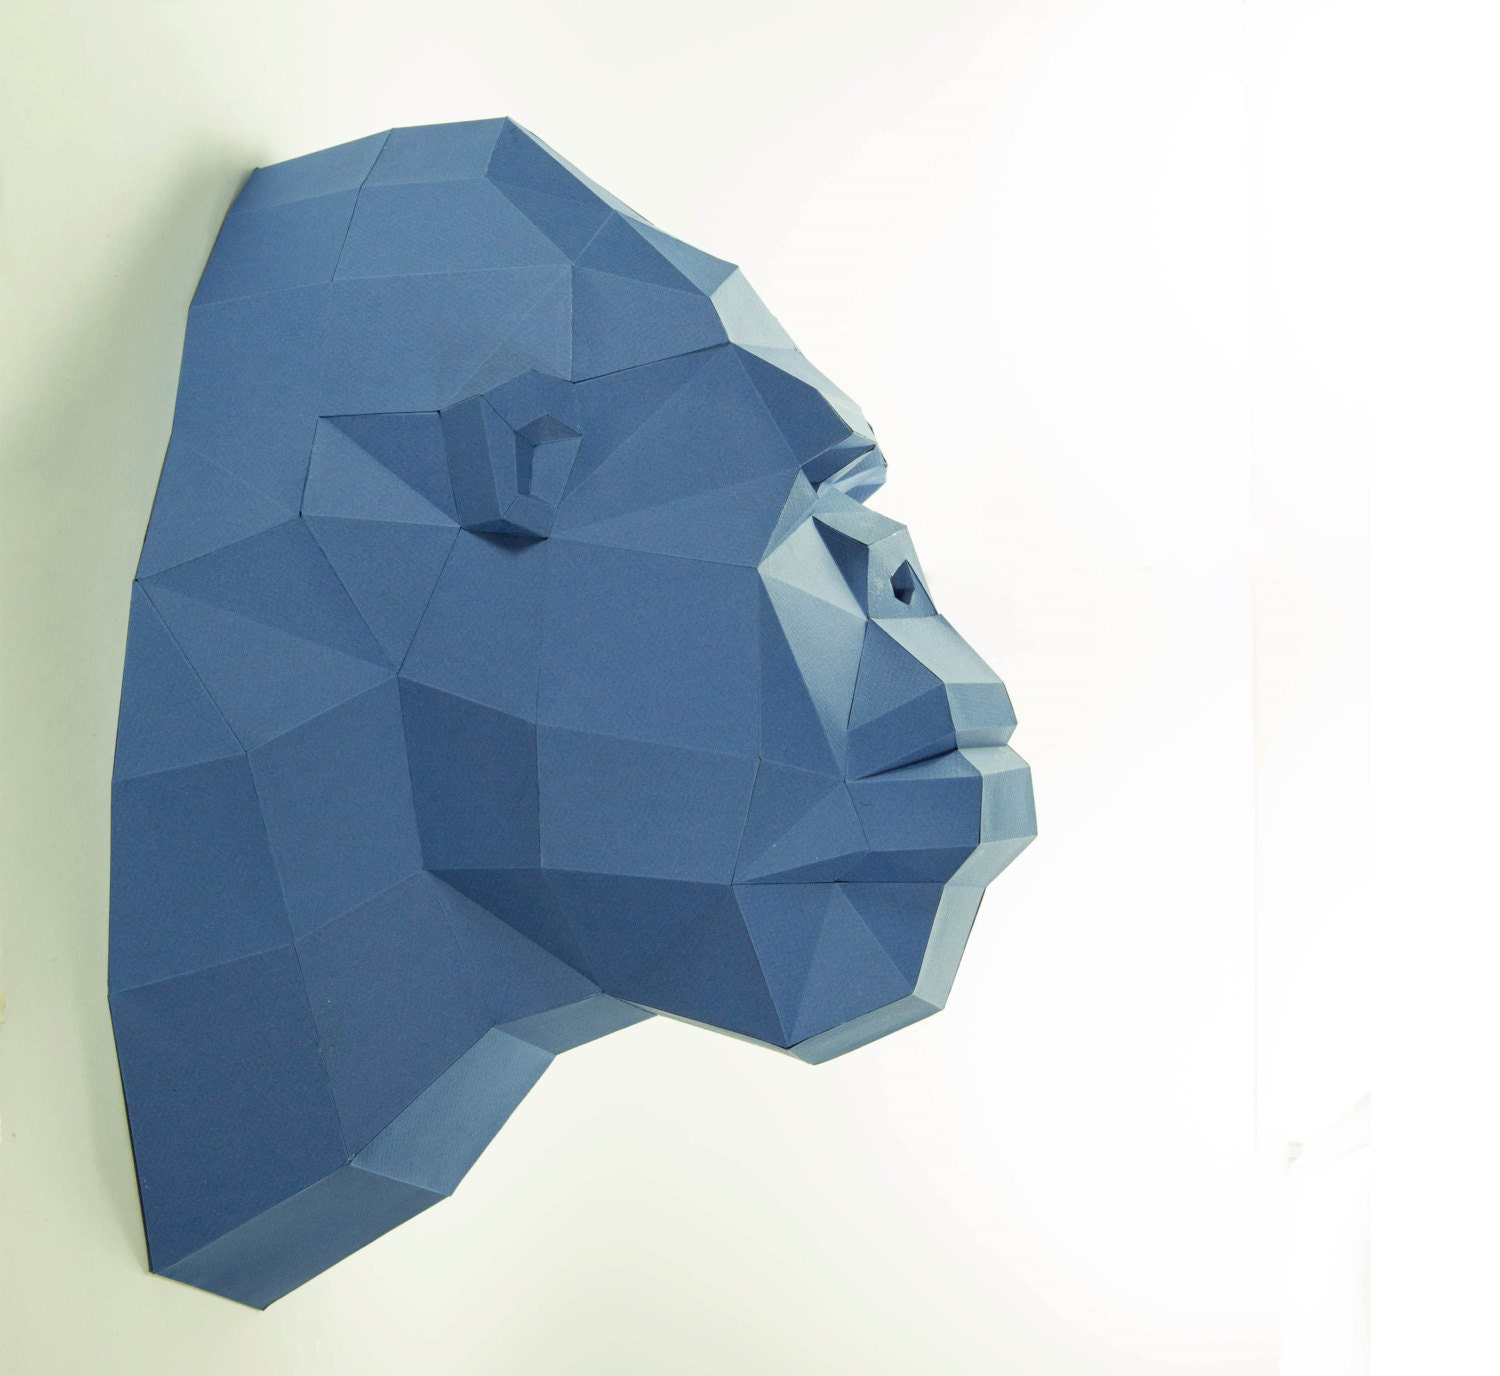 gorilla paper Free essay: have you ever wondered about gorillas a gorilla is a very strong built great ape with a large head and short neck gorillas are the largest.